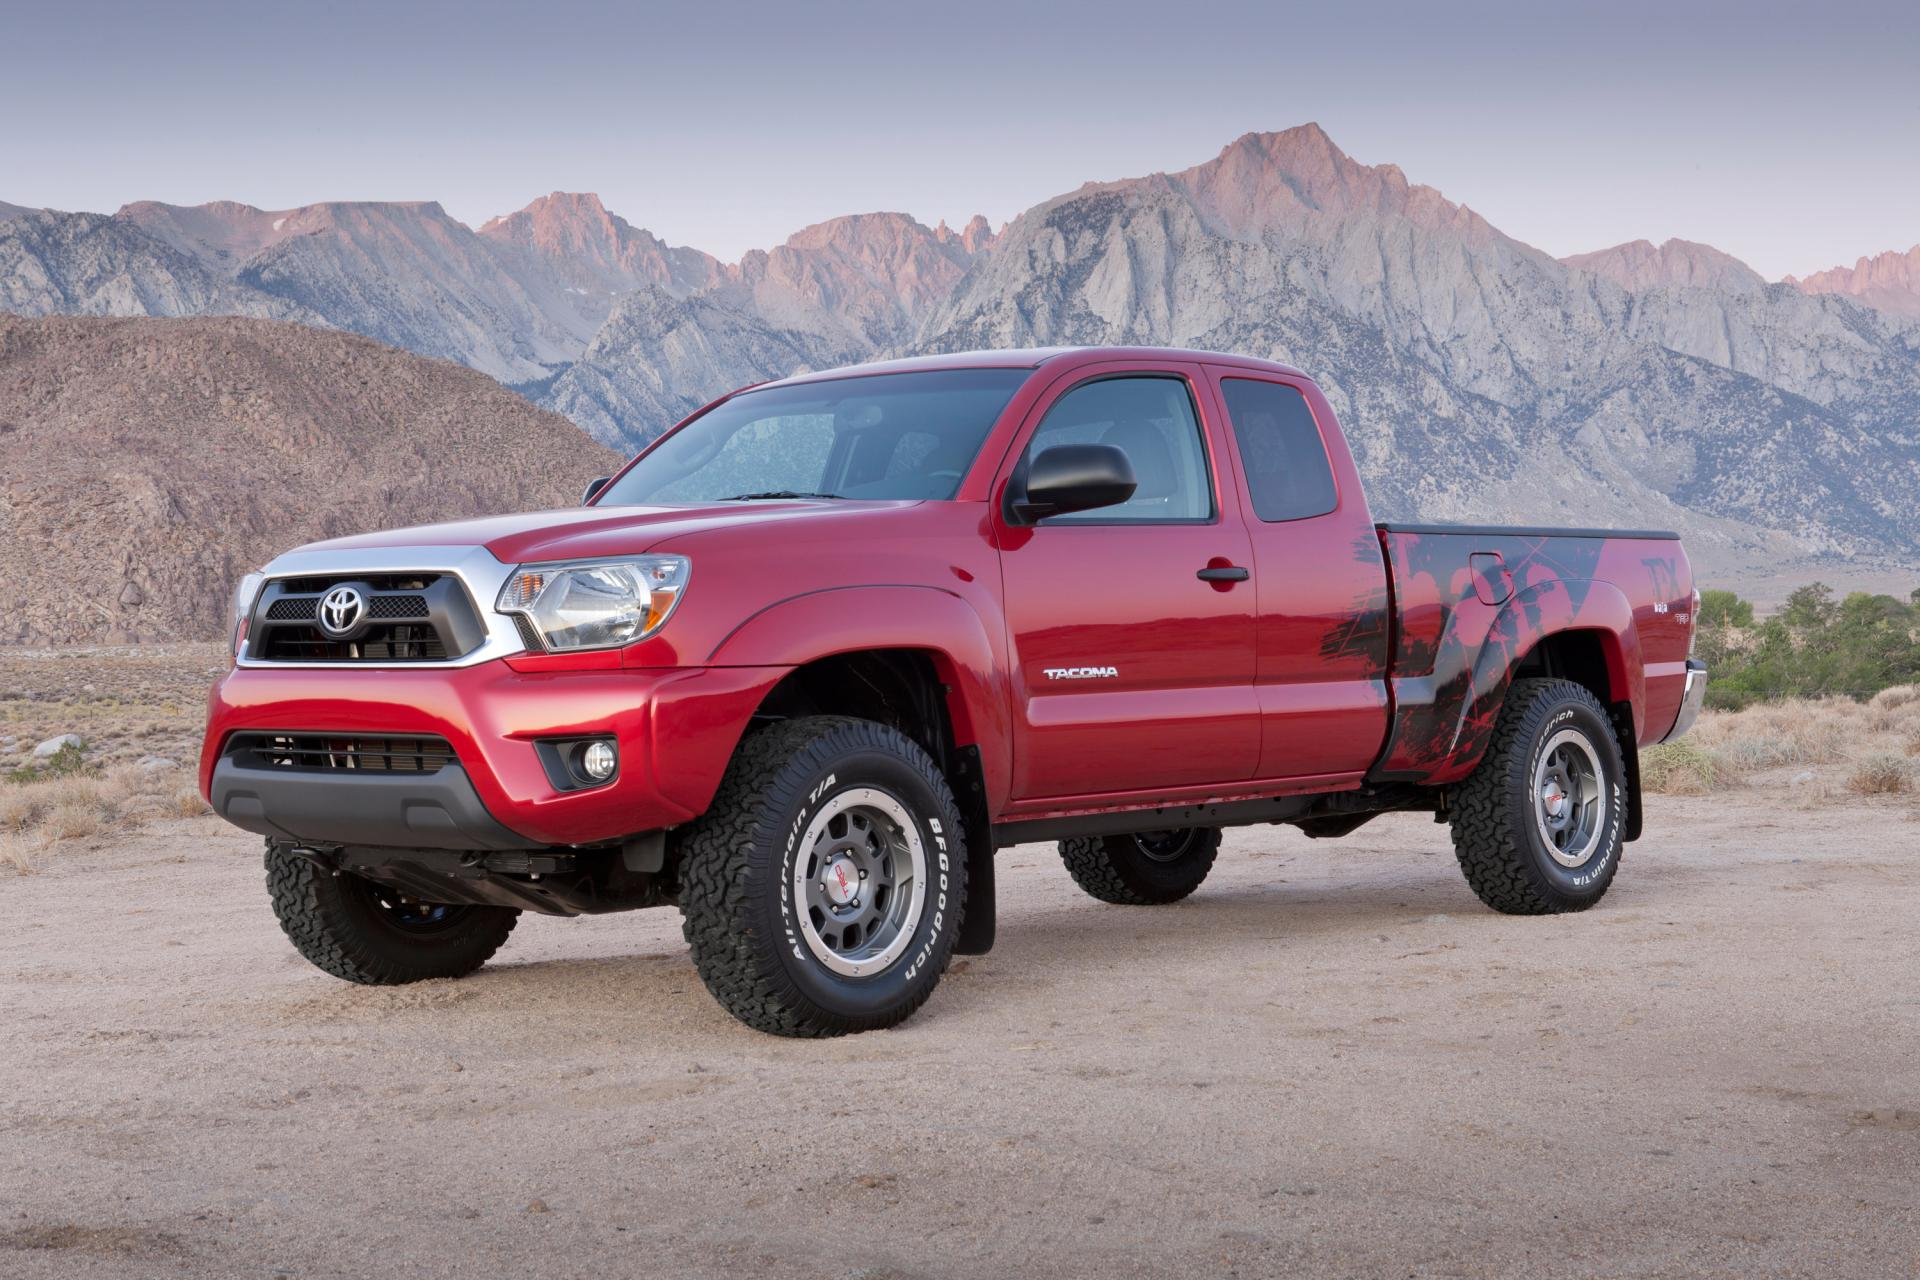 2012 toyota tacoma trd t x baja series limited edition. Black Bedroom Furniture Sets. Home Design Ideas